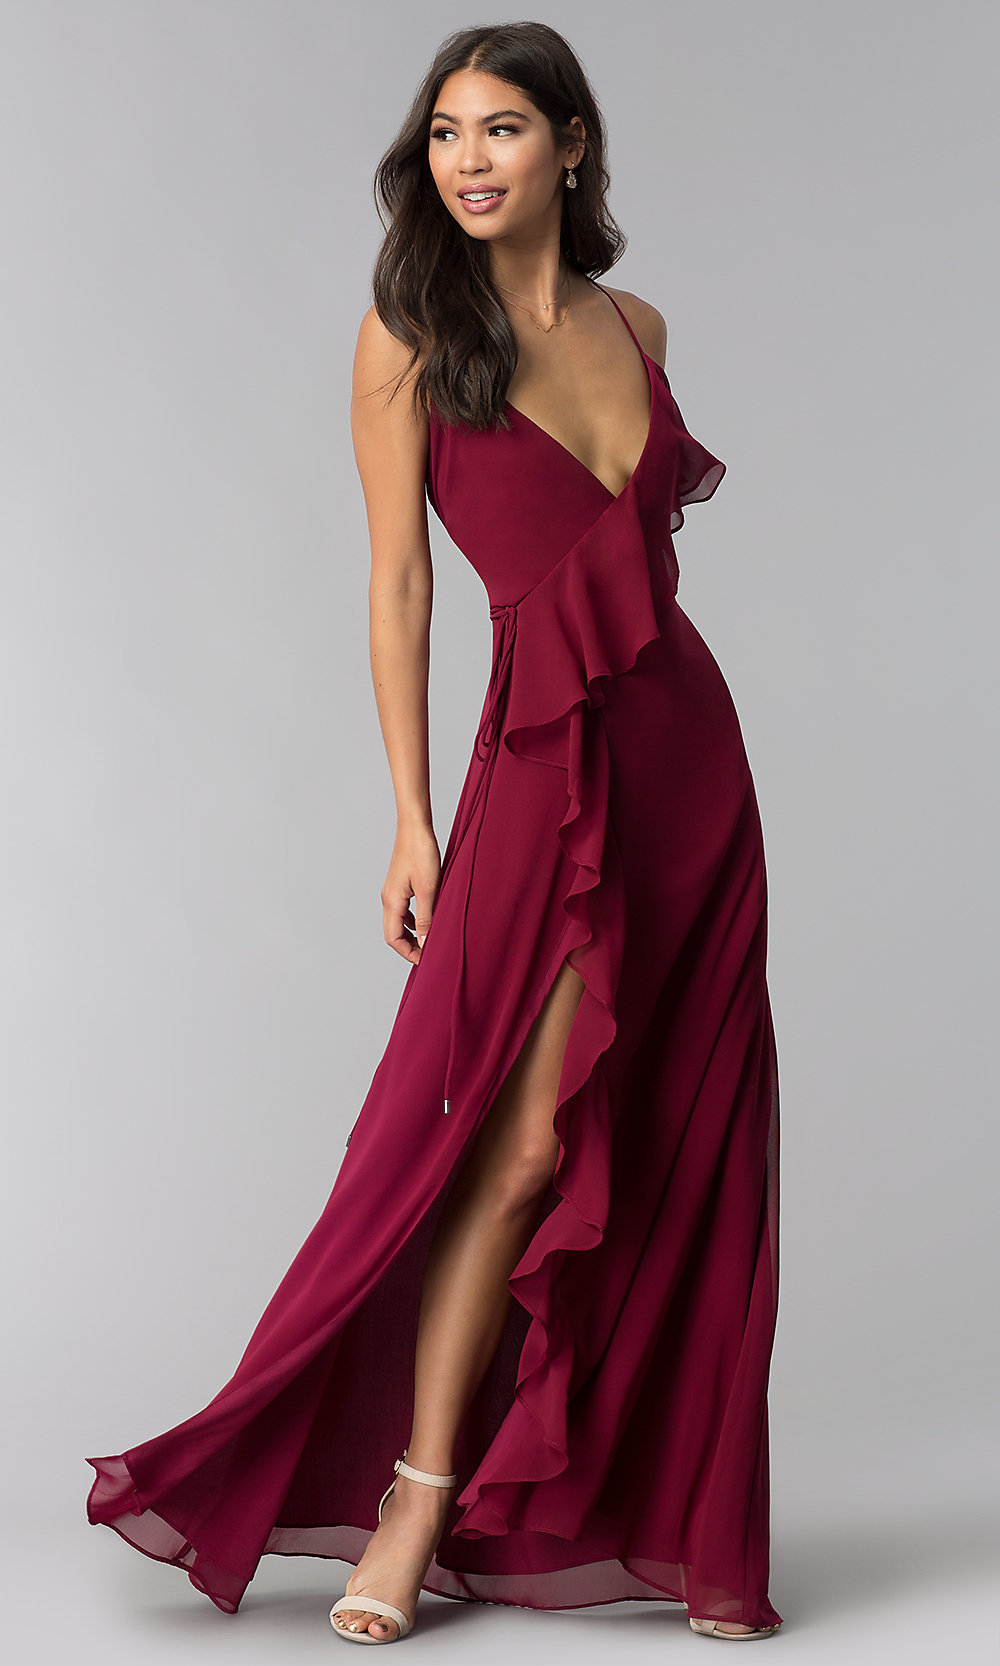 Long Wine Red Ruffled Wrap Wedding Guest Dress